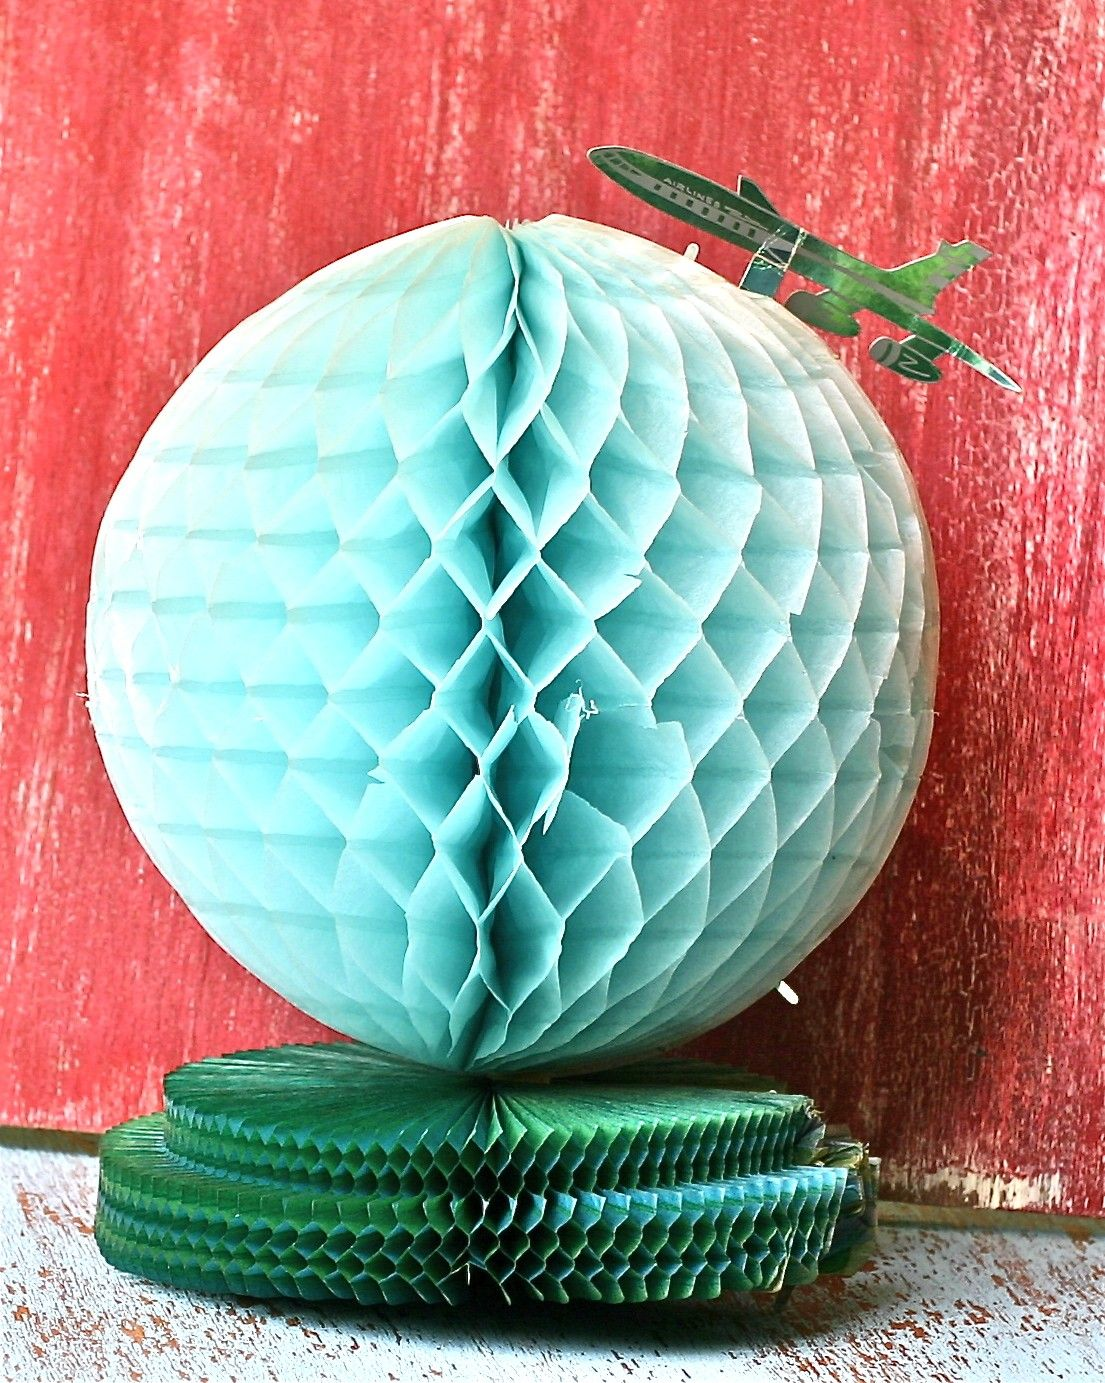 Vintage Party Decoration Honeycomb Tissue Globe and Airplane. $5.00, via Etsy